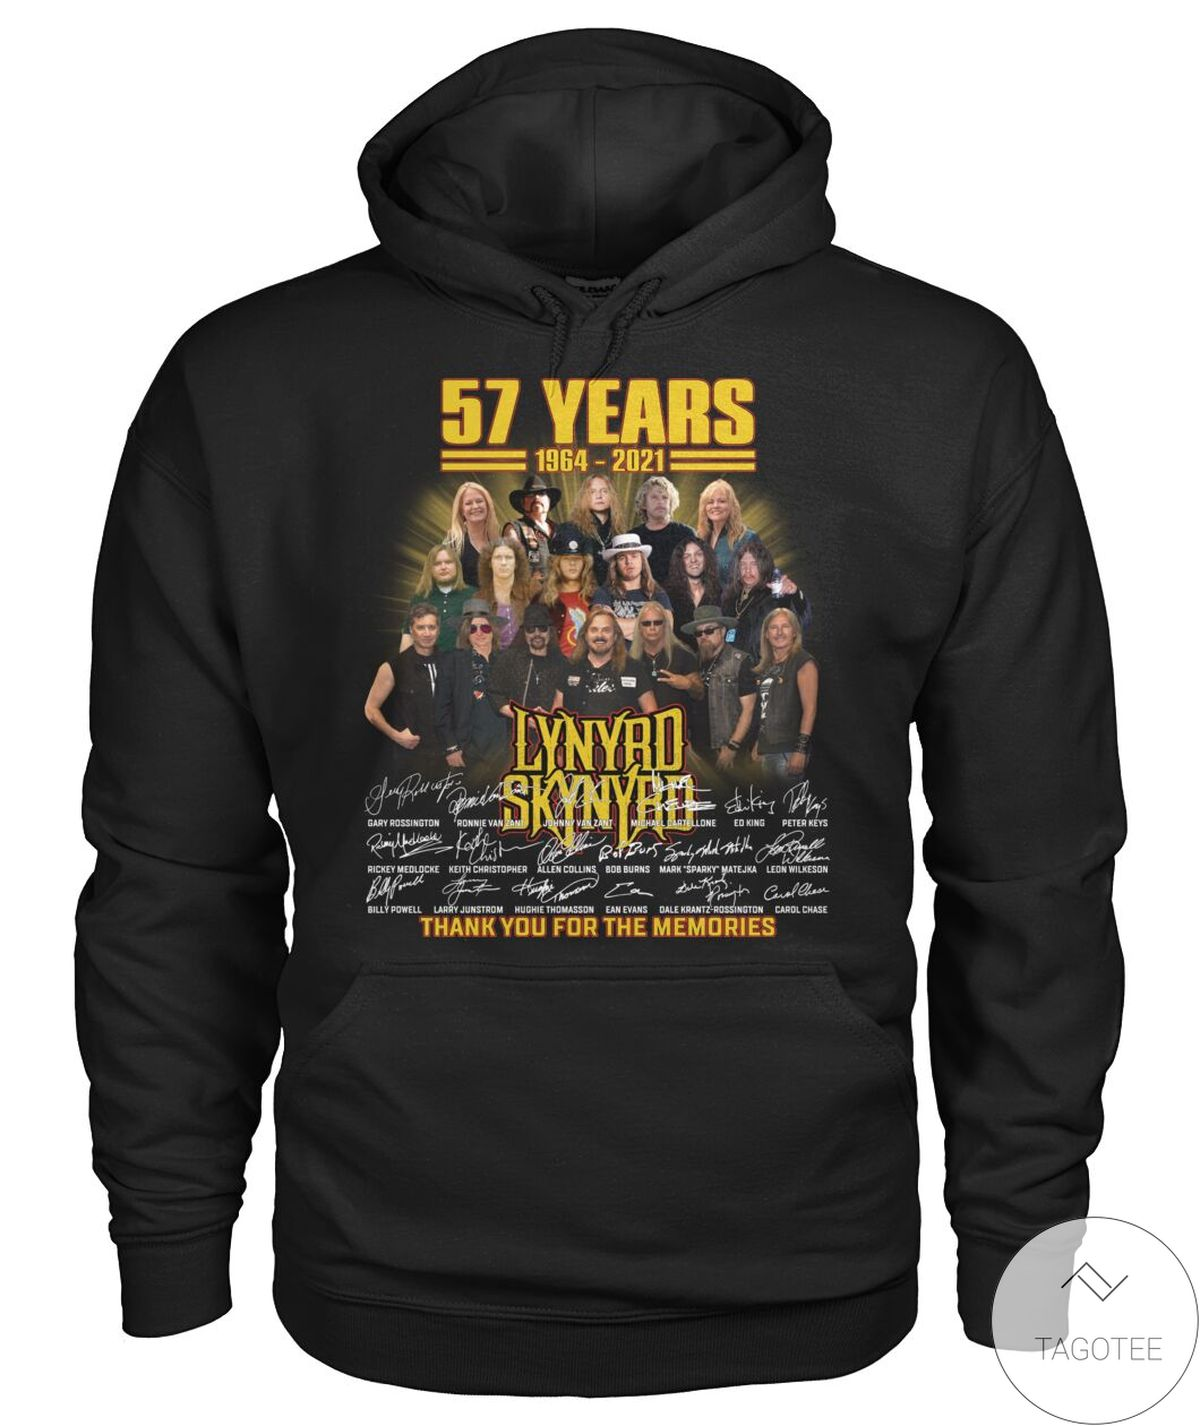 Perfect Lynyrd Skynyrd 57 Years Thank You For The Memories Shirt, hoodie, tank top